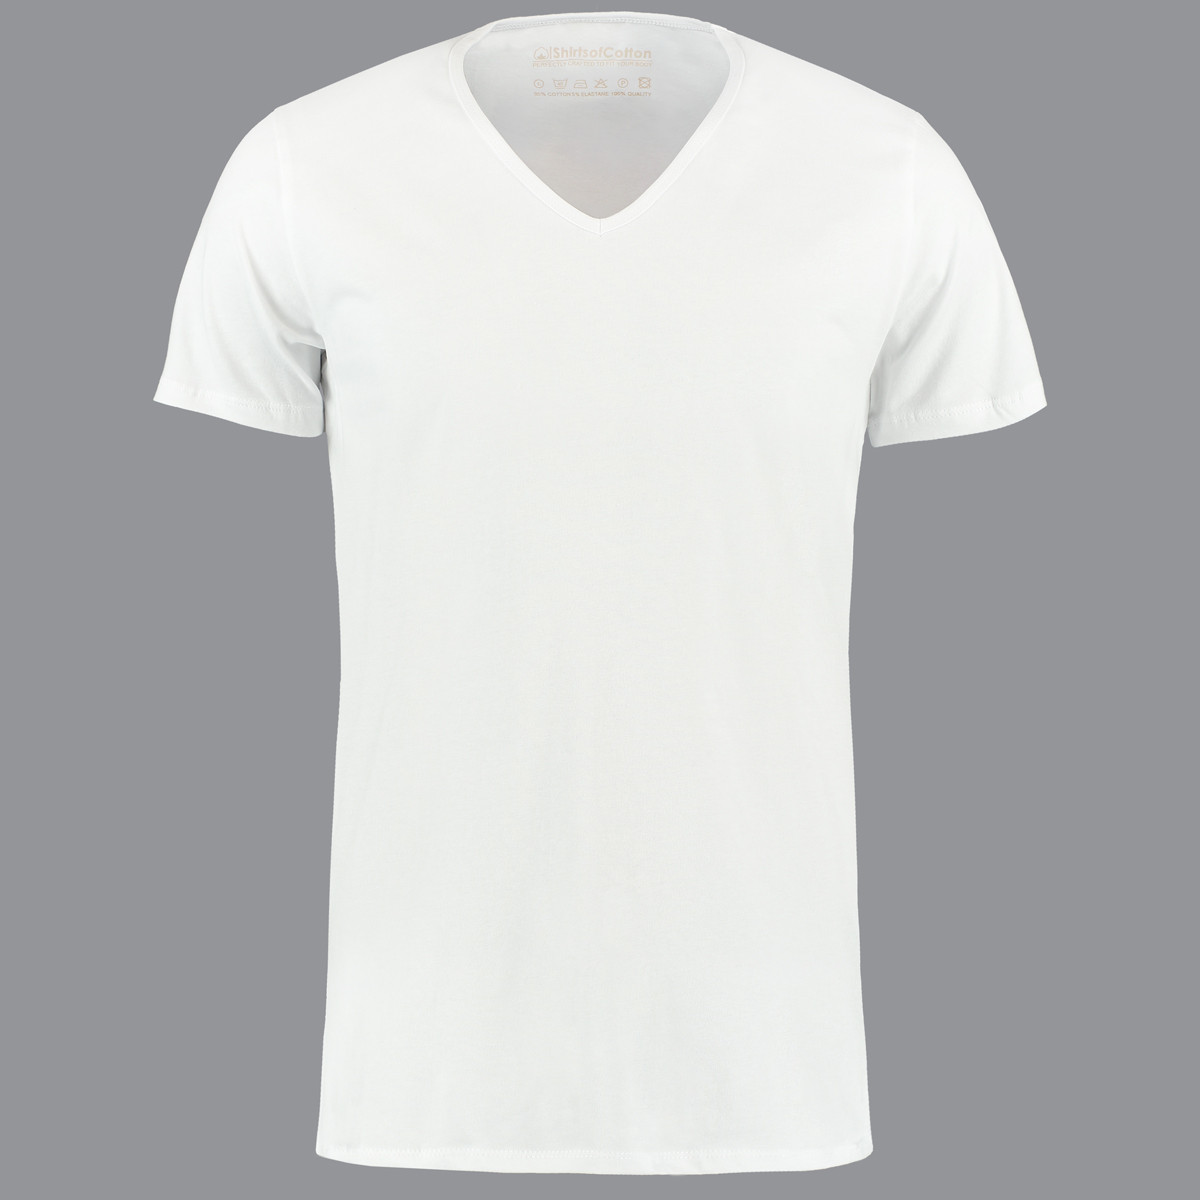 V Neck T Shirt V Neck T Shirts For Boys – Fashionarrow.com